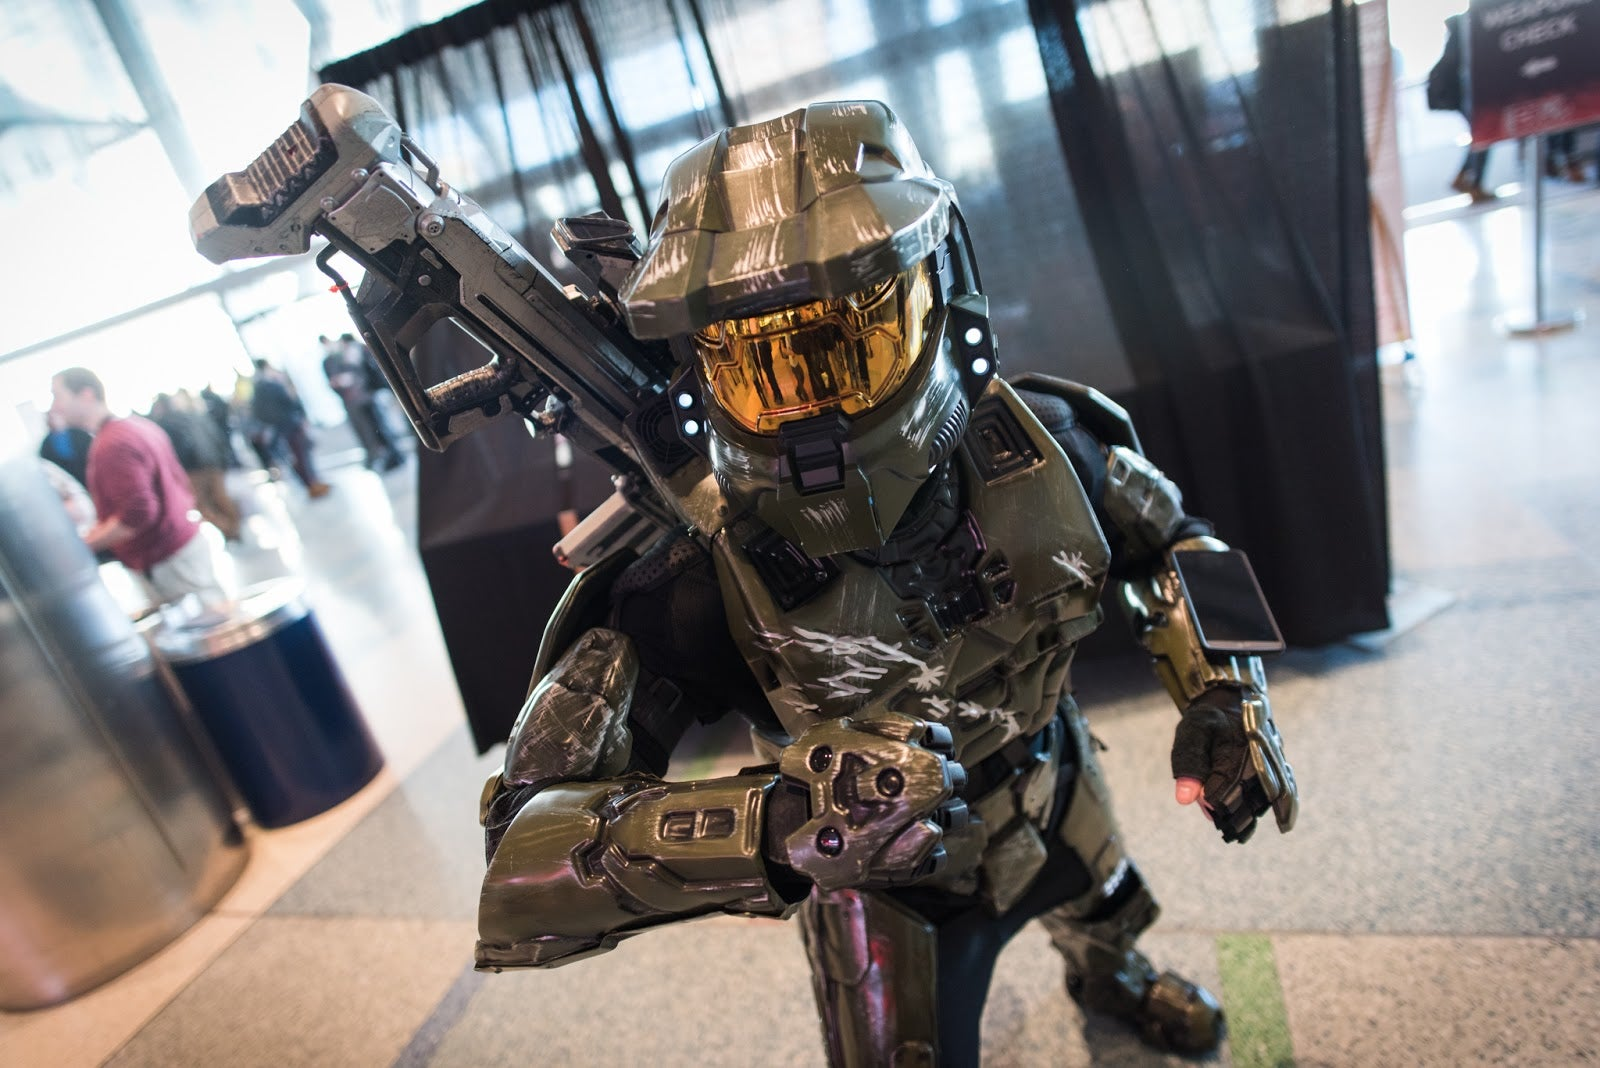 Halo Multiplayer Works in the Real World at Least